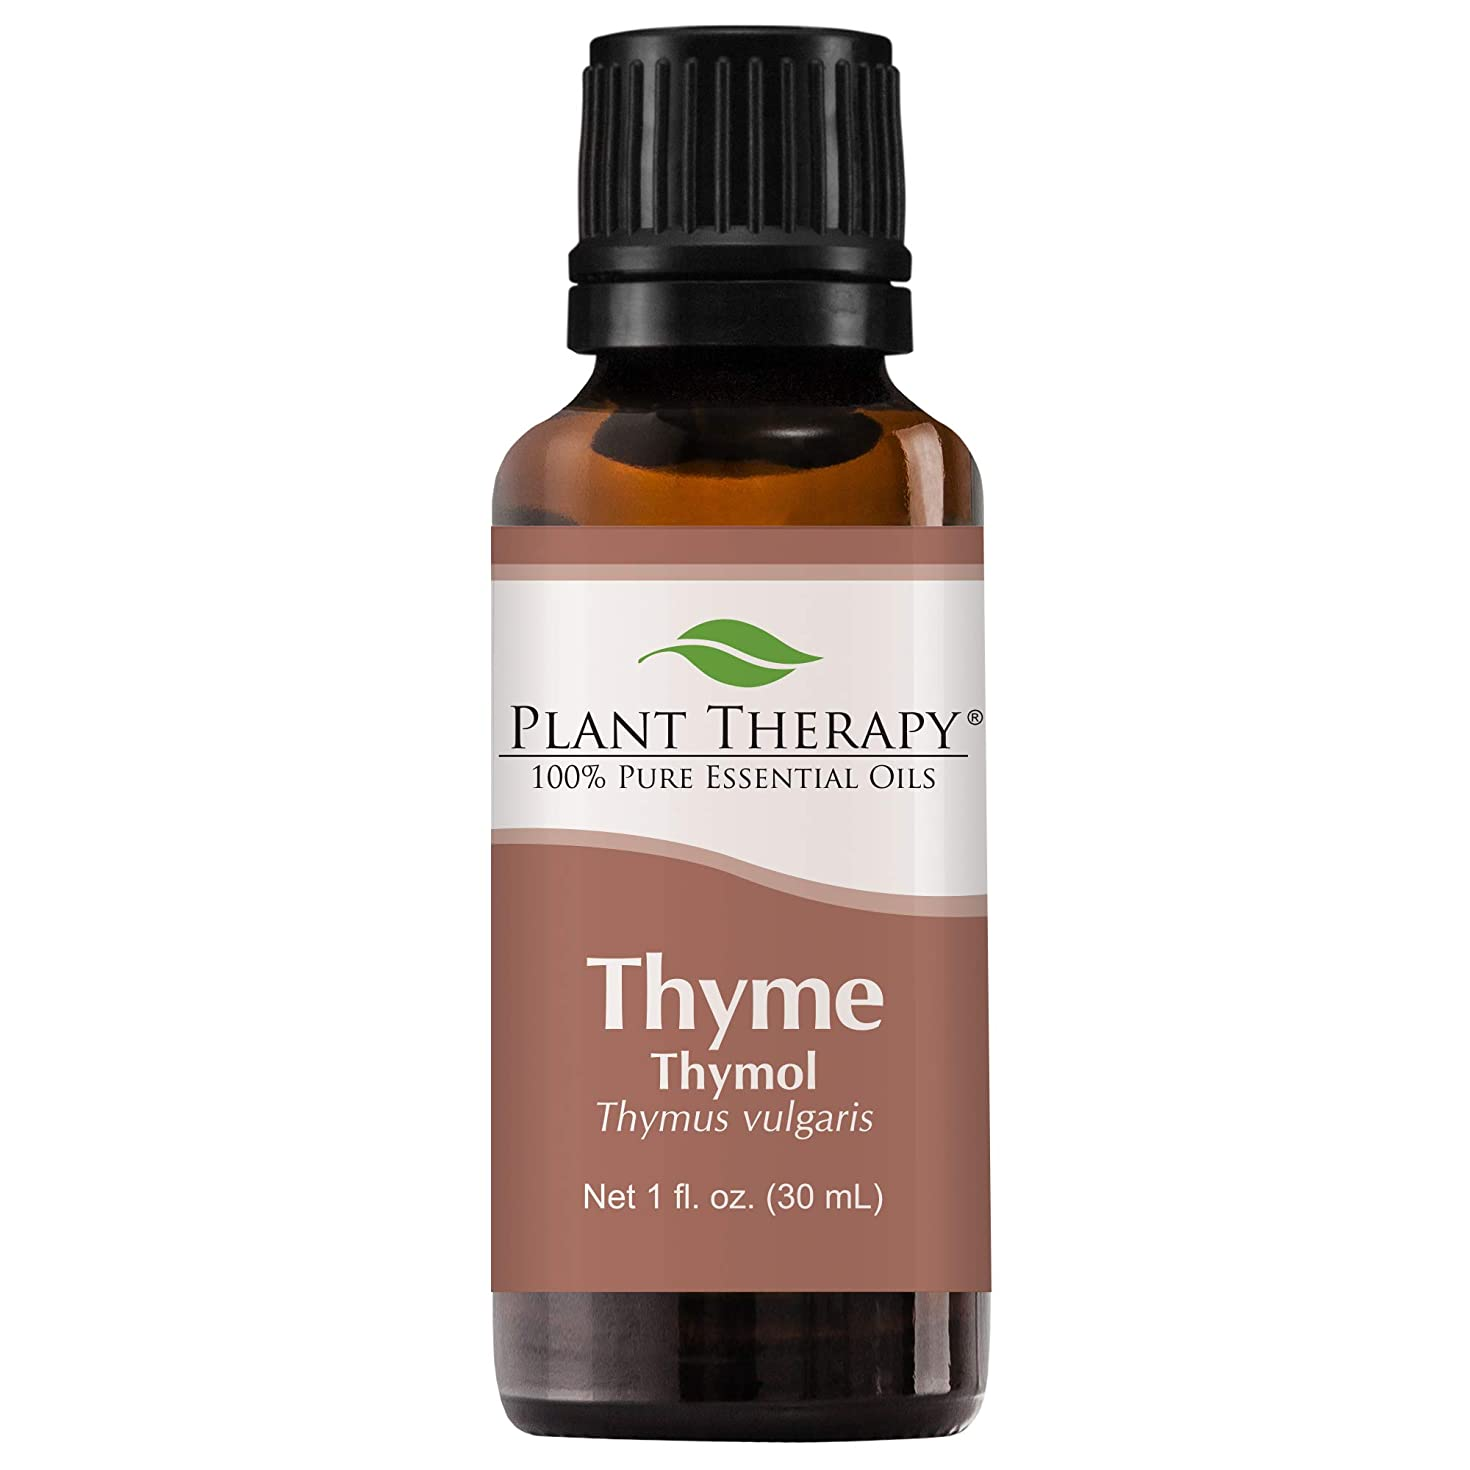 してはいけませんアマゾンジャングルレプリカPlant Therapy Thyme Thymol Essential Oil. 100% Pure, Undiluted, Therapeutic Grade. 30 ml (1 oz). by Plant Therapy Essential Oils